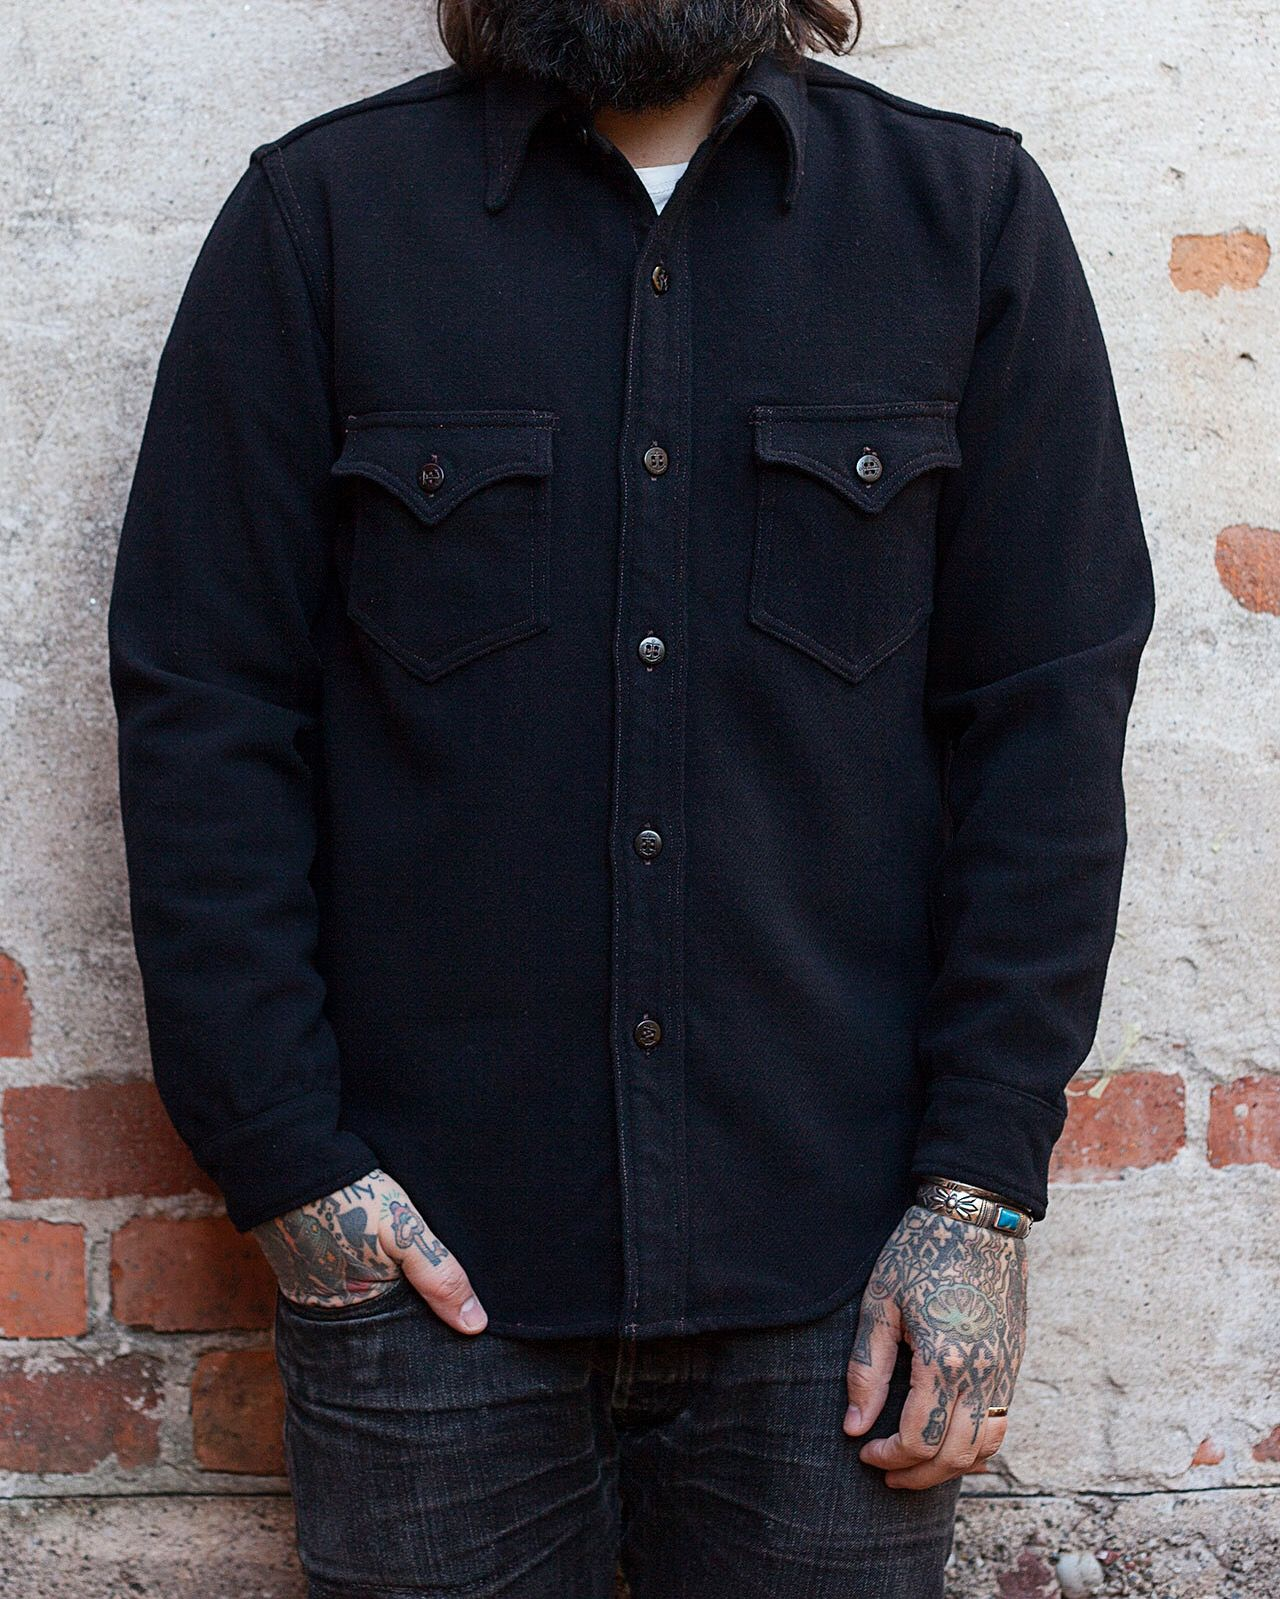 Freewheelers Cpo Shirt Heavy Wool Made In Japan Usn Clothes